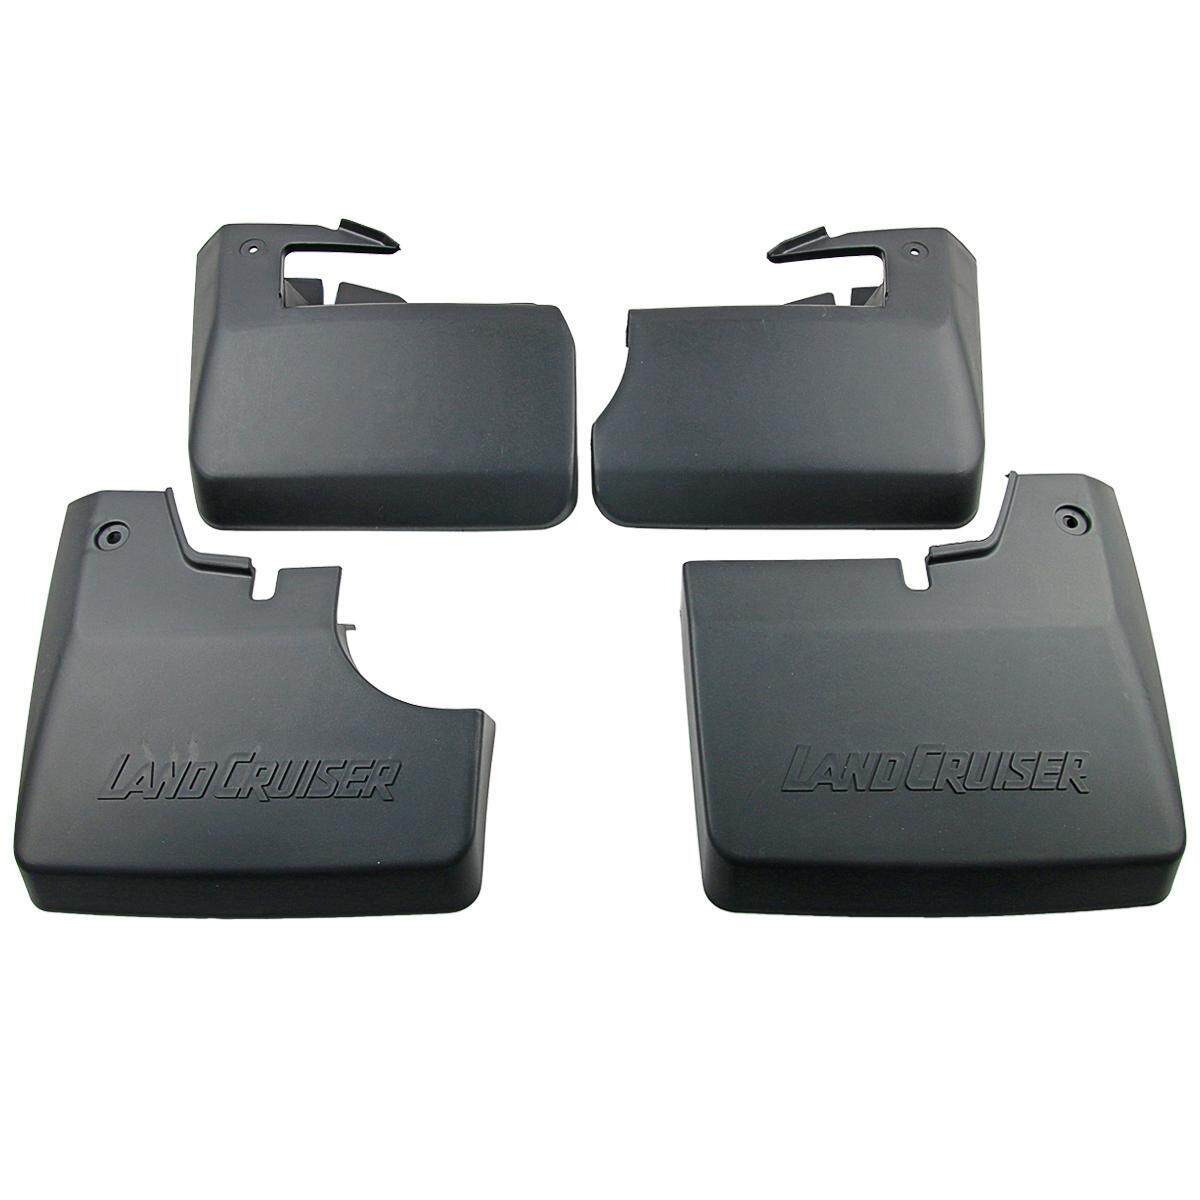 Mud Flap Splash Guard Set For Toyota Land Cruiser 70 J71 2007-On Swb W/ Fender By Carpartsmy..